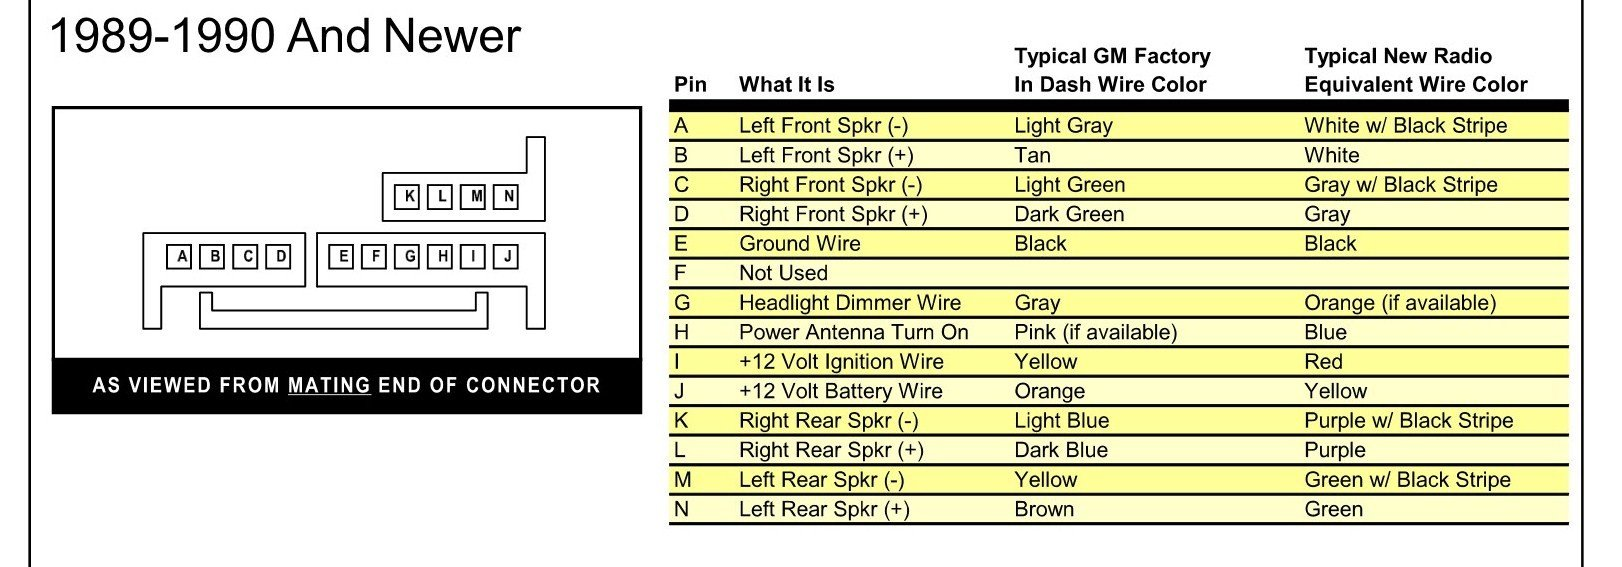 2008 Chevy Equinox Wiring Diagram Starting Know About Suzuki Xl7 Radio I Am Trying To Install An Afertmarket Cd Player In A 2005 Stereo